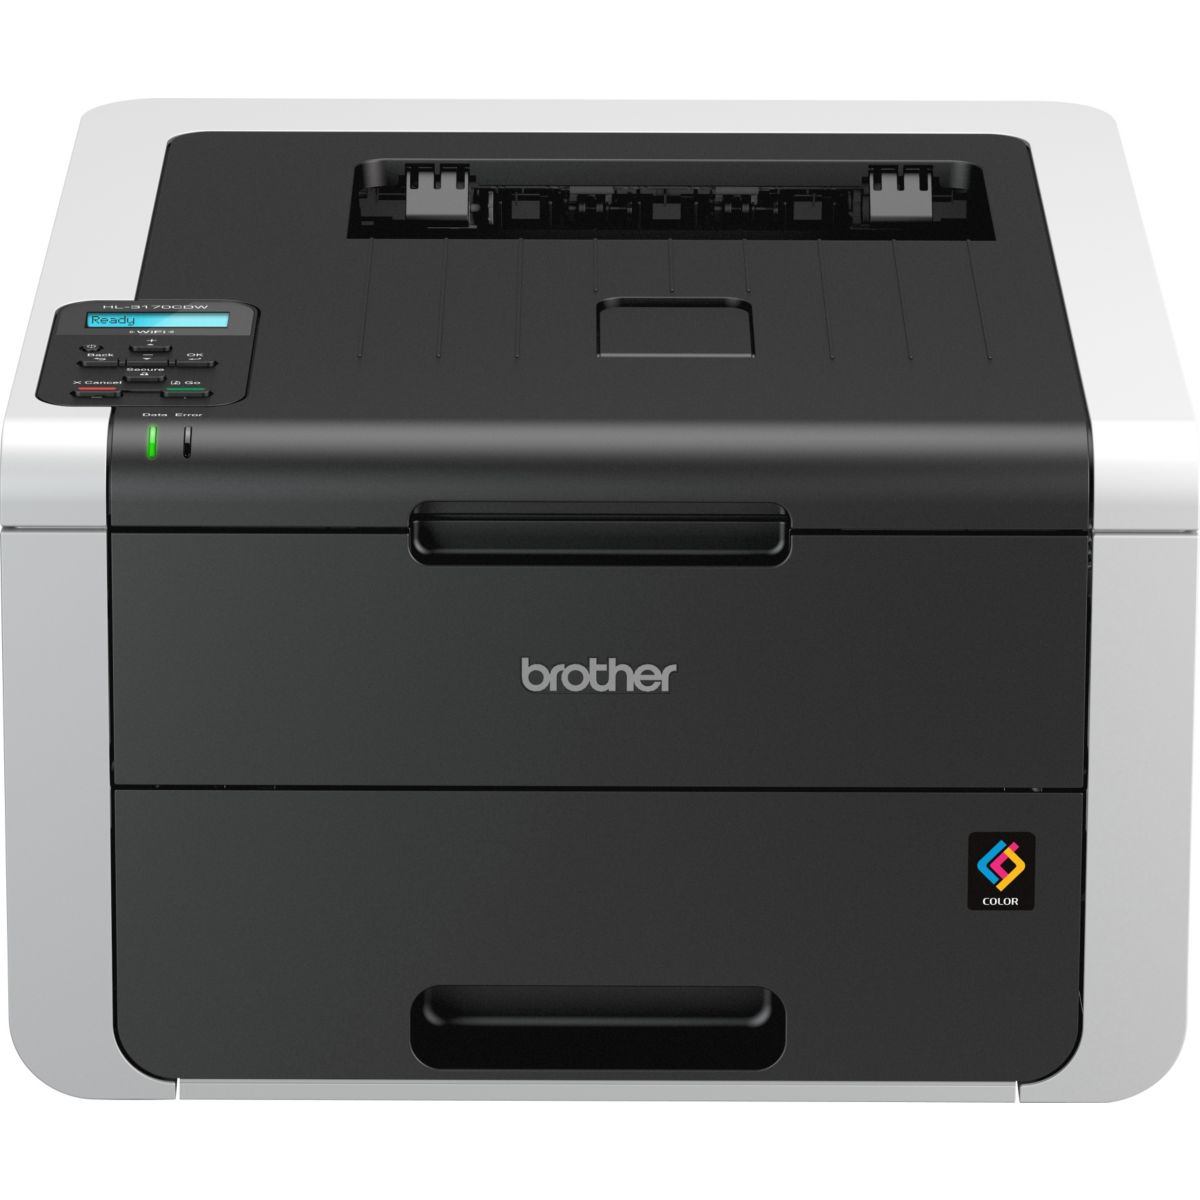 Imprimante monofonction laser couleur BROTHER HL3170CDW